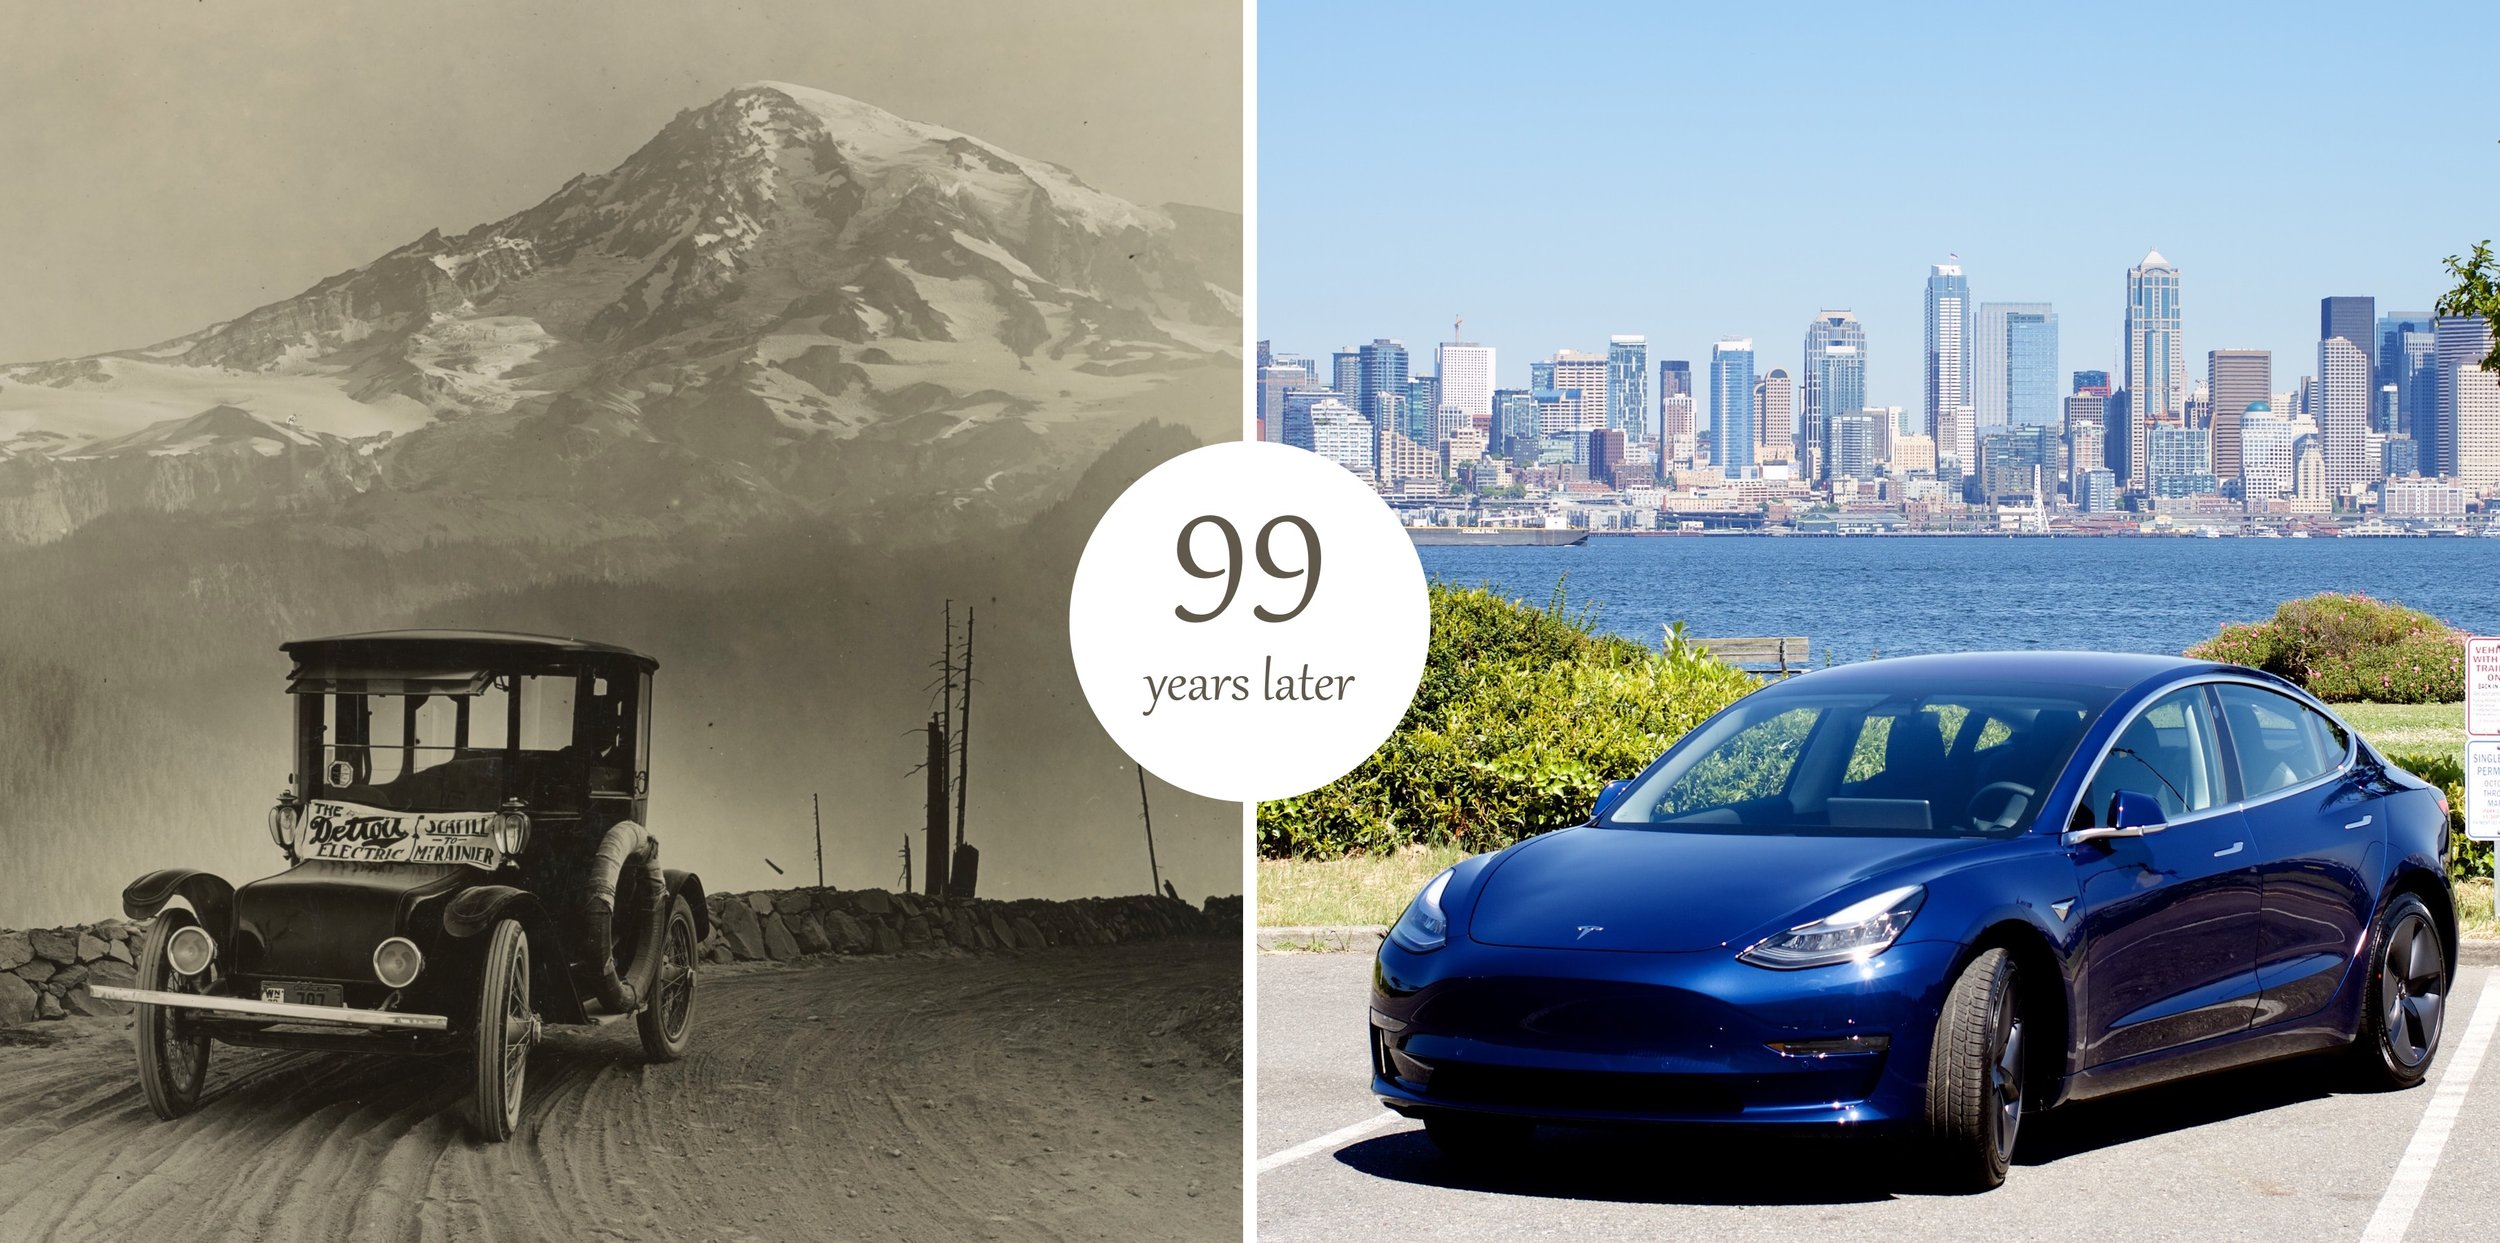 99 years later seattle to mt rainier.jpg